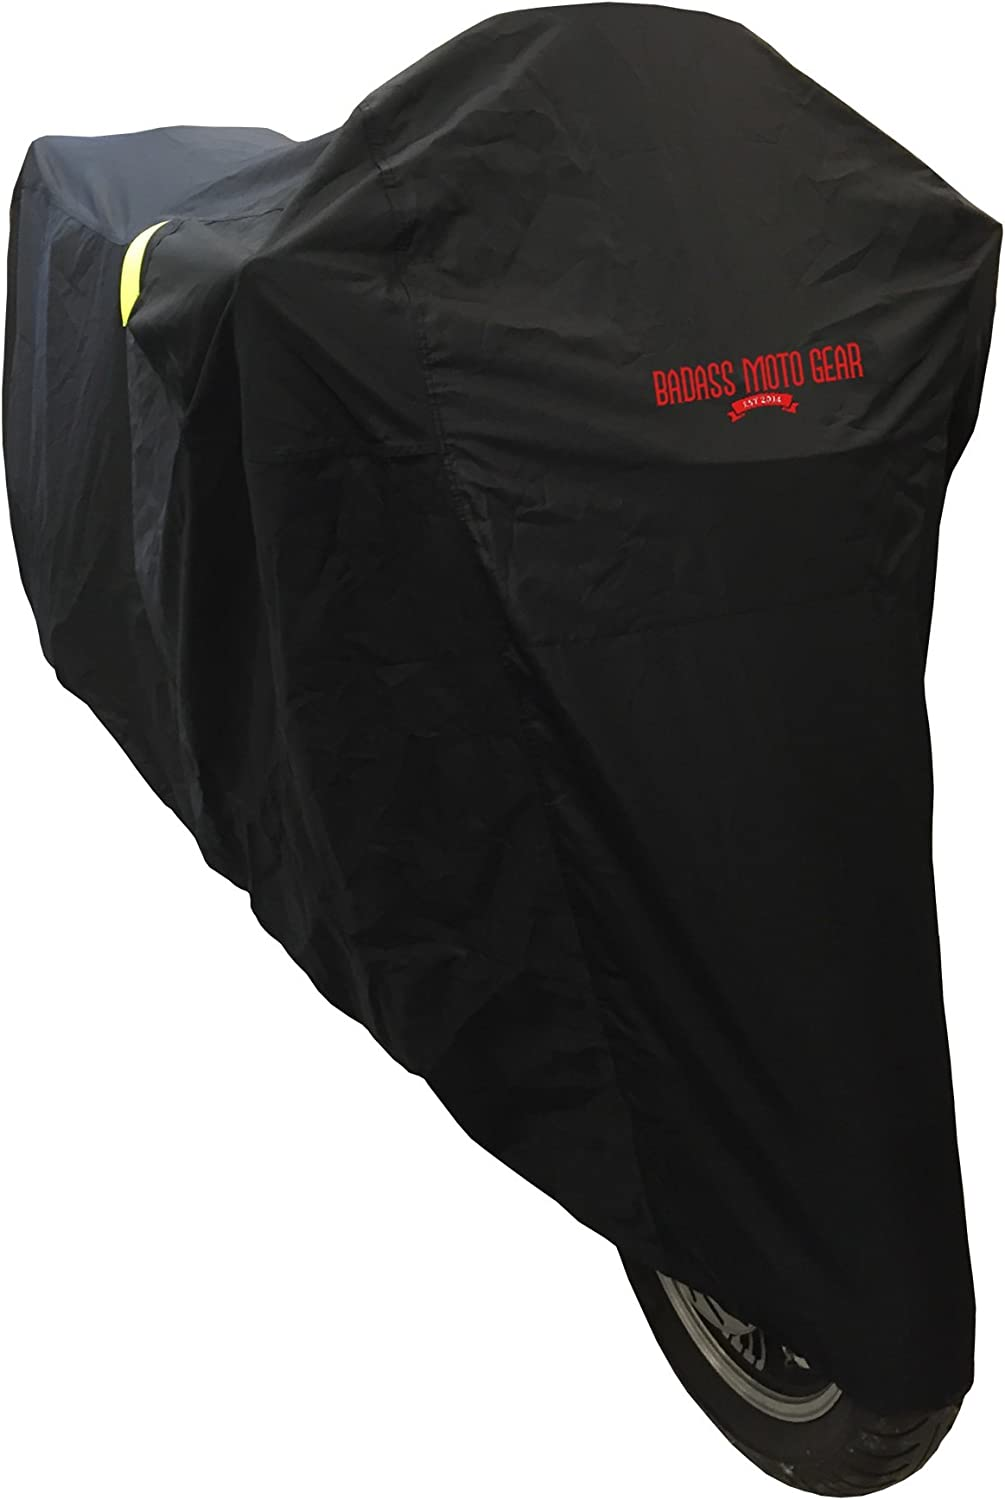 Ultimate Waterproof Motorcycle Cover - Outdoor Storage Motorcycle Covers for Harleys - Street or Sport Bike. Taped Seams, Windshield Liner, Heat Shield, Vents, Reflective, Grommets, Alarm Pockets, SM